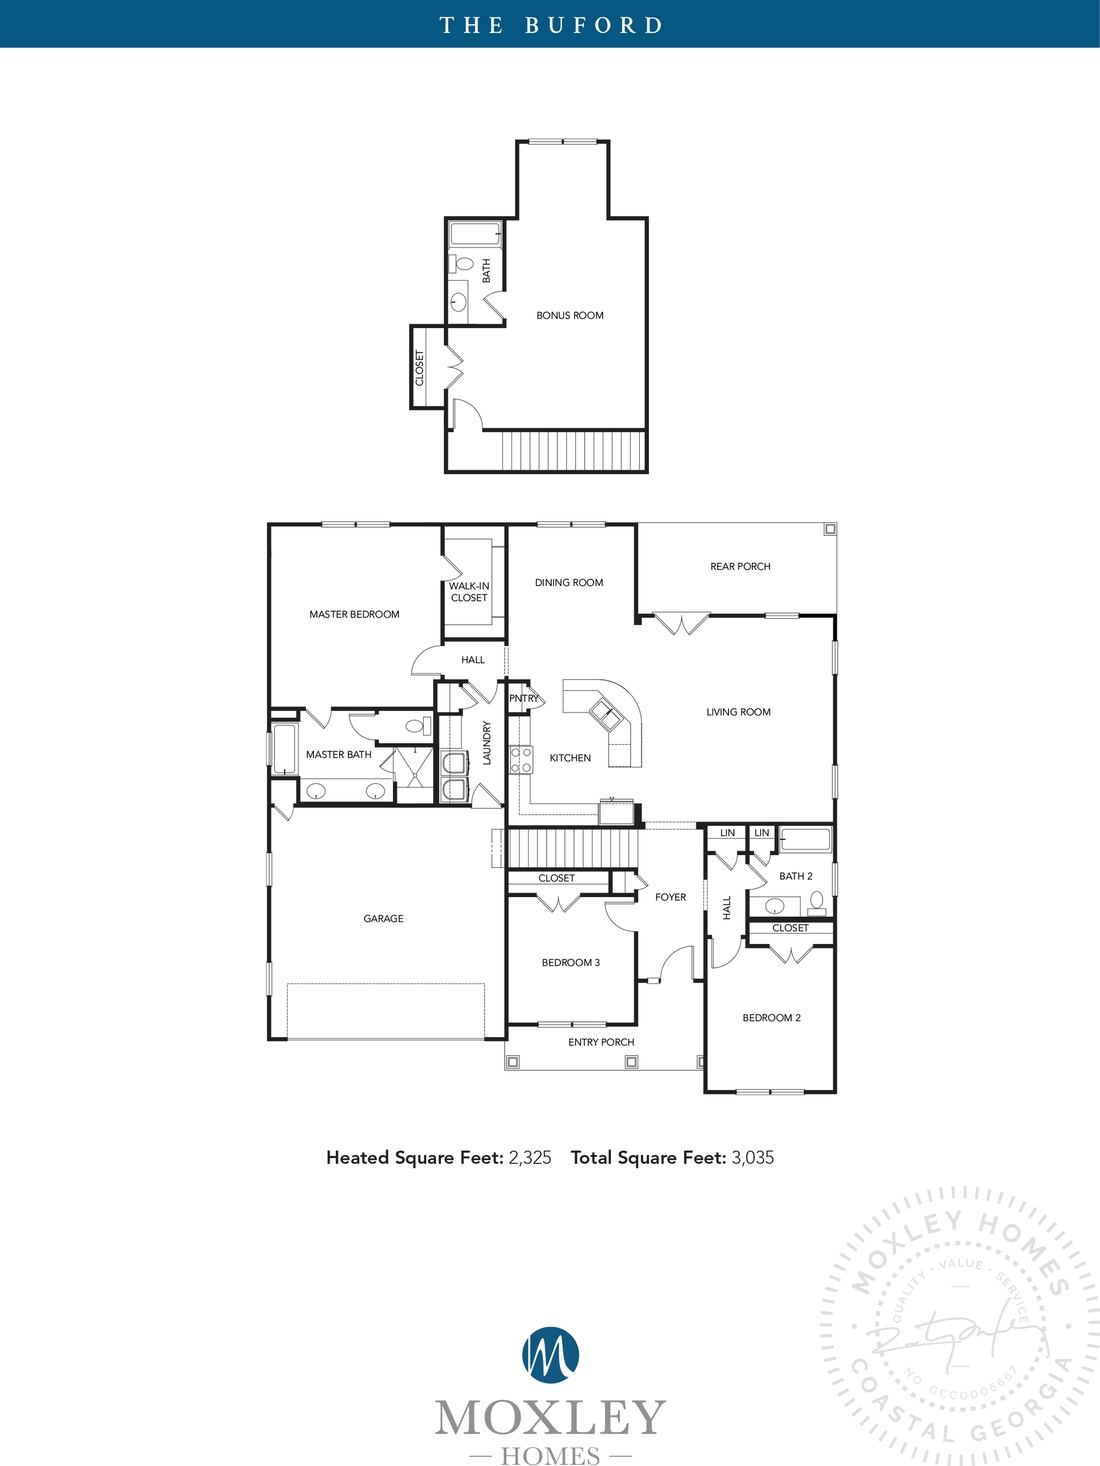 carriage gate plantation, grace crossing, The Buford floor plans